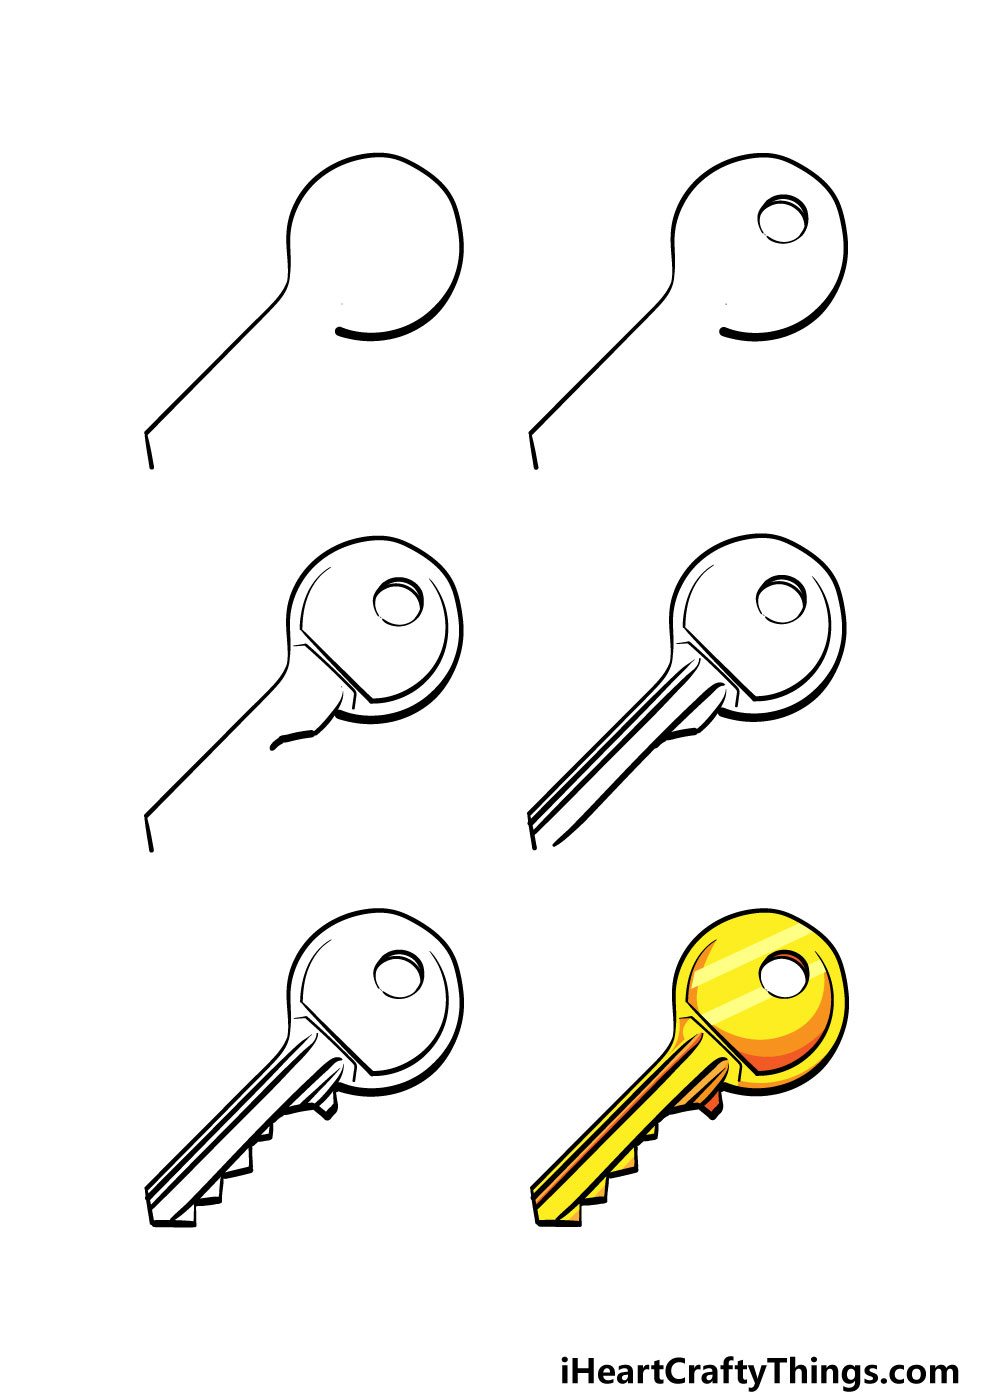 how to draw a key in 6 steps